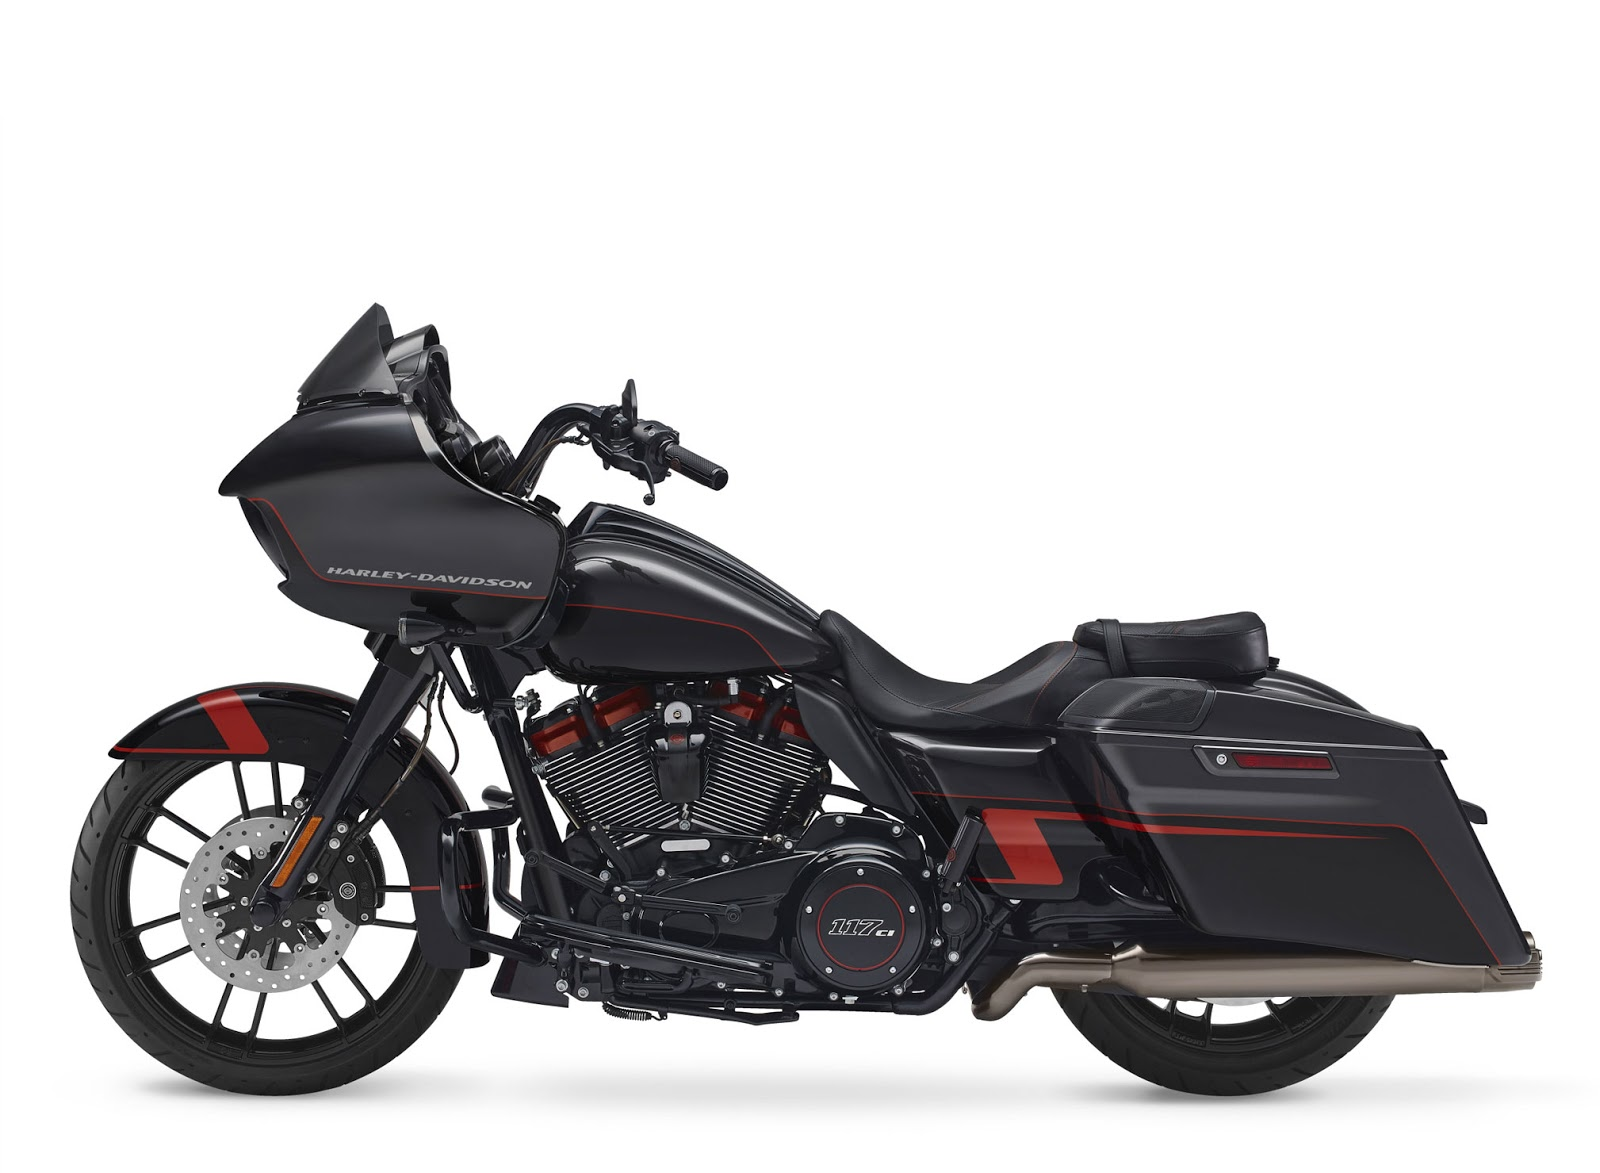 harley davidson cvo custom cvo road glide fltrxse model owner 39 s manual 2018. Black Bedroom Furniture Sets. Home Design Ideas